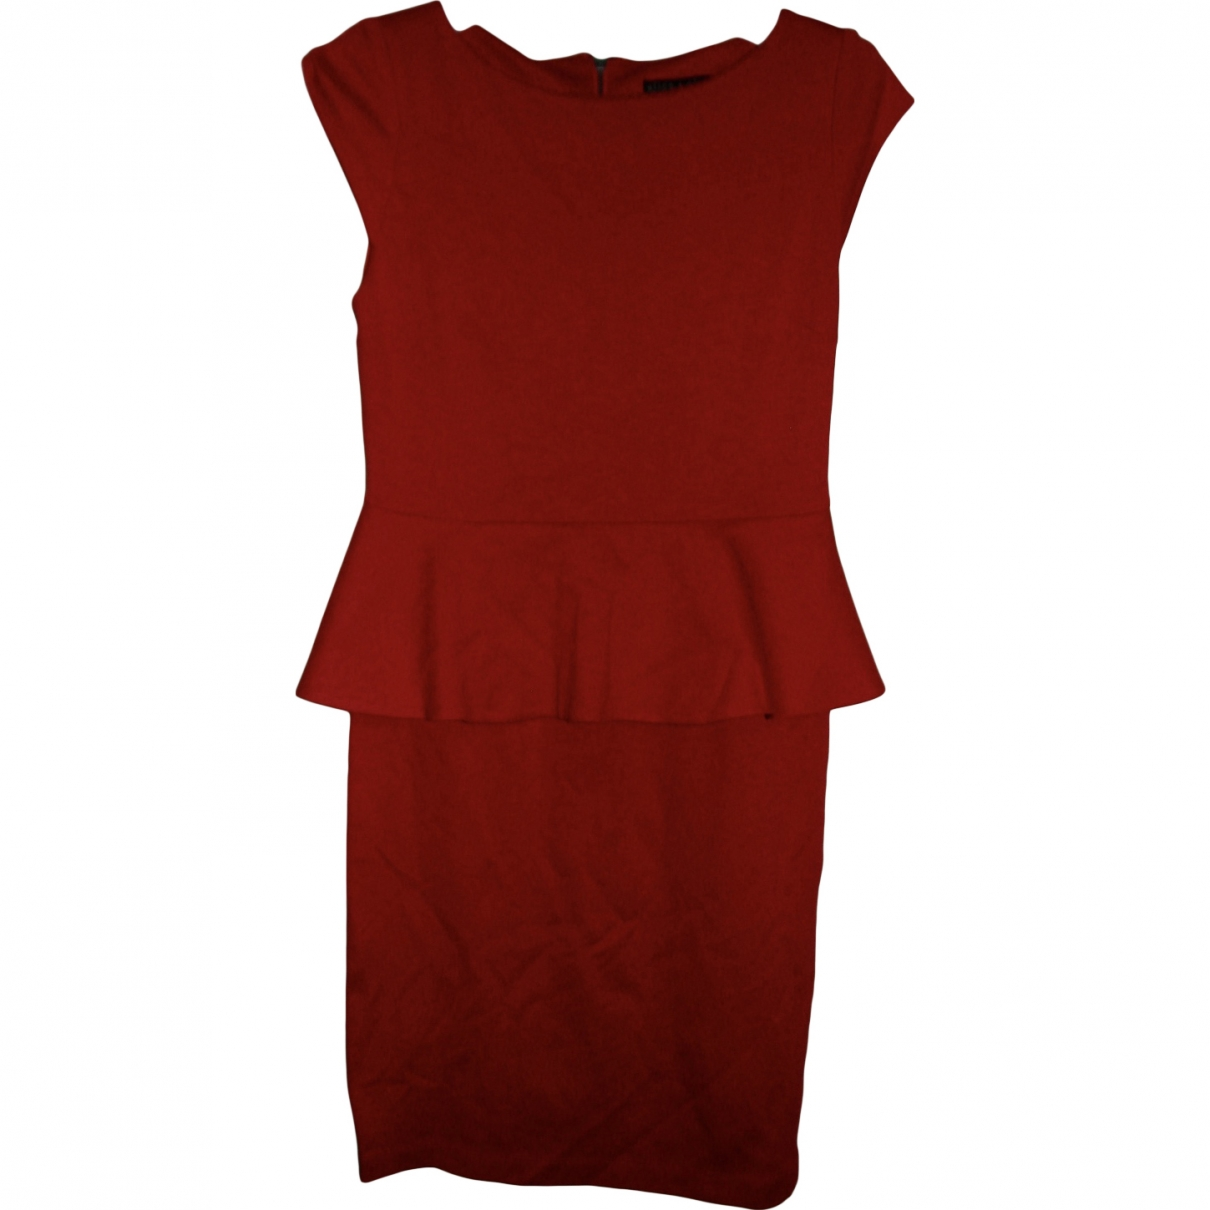 Alice & Olivia \N Red dress for Women 6 US